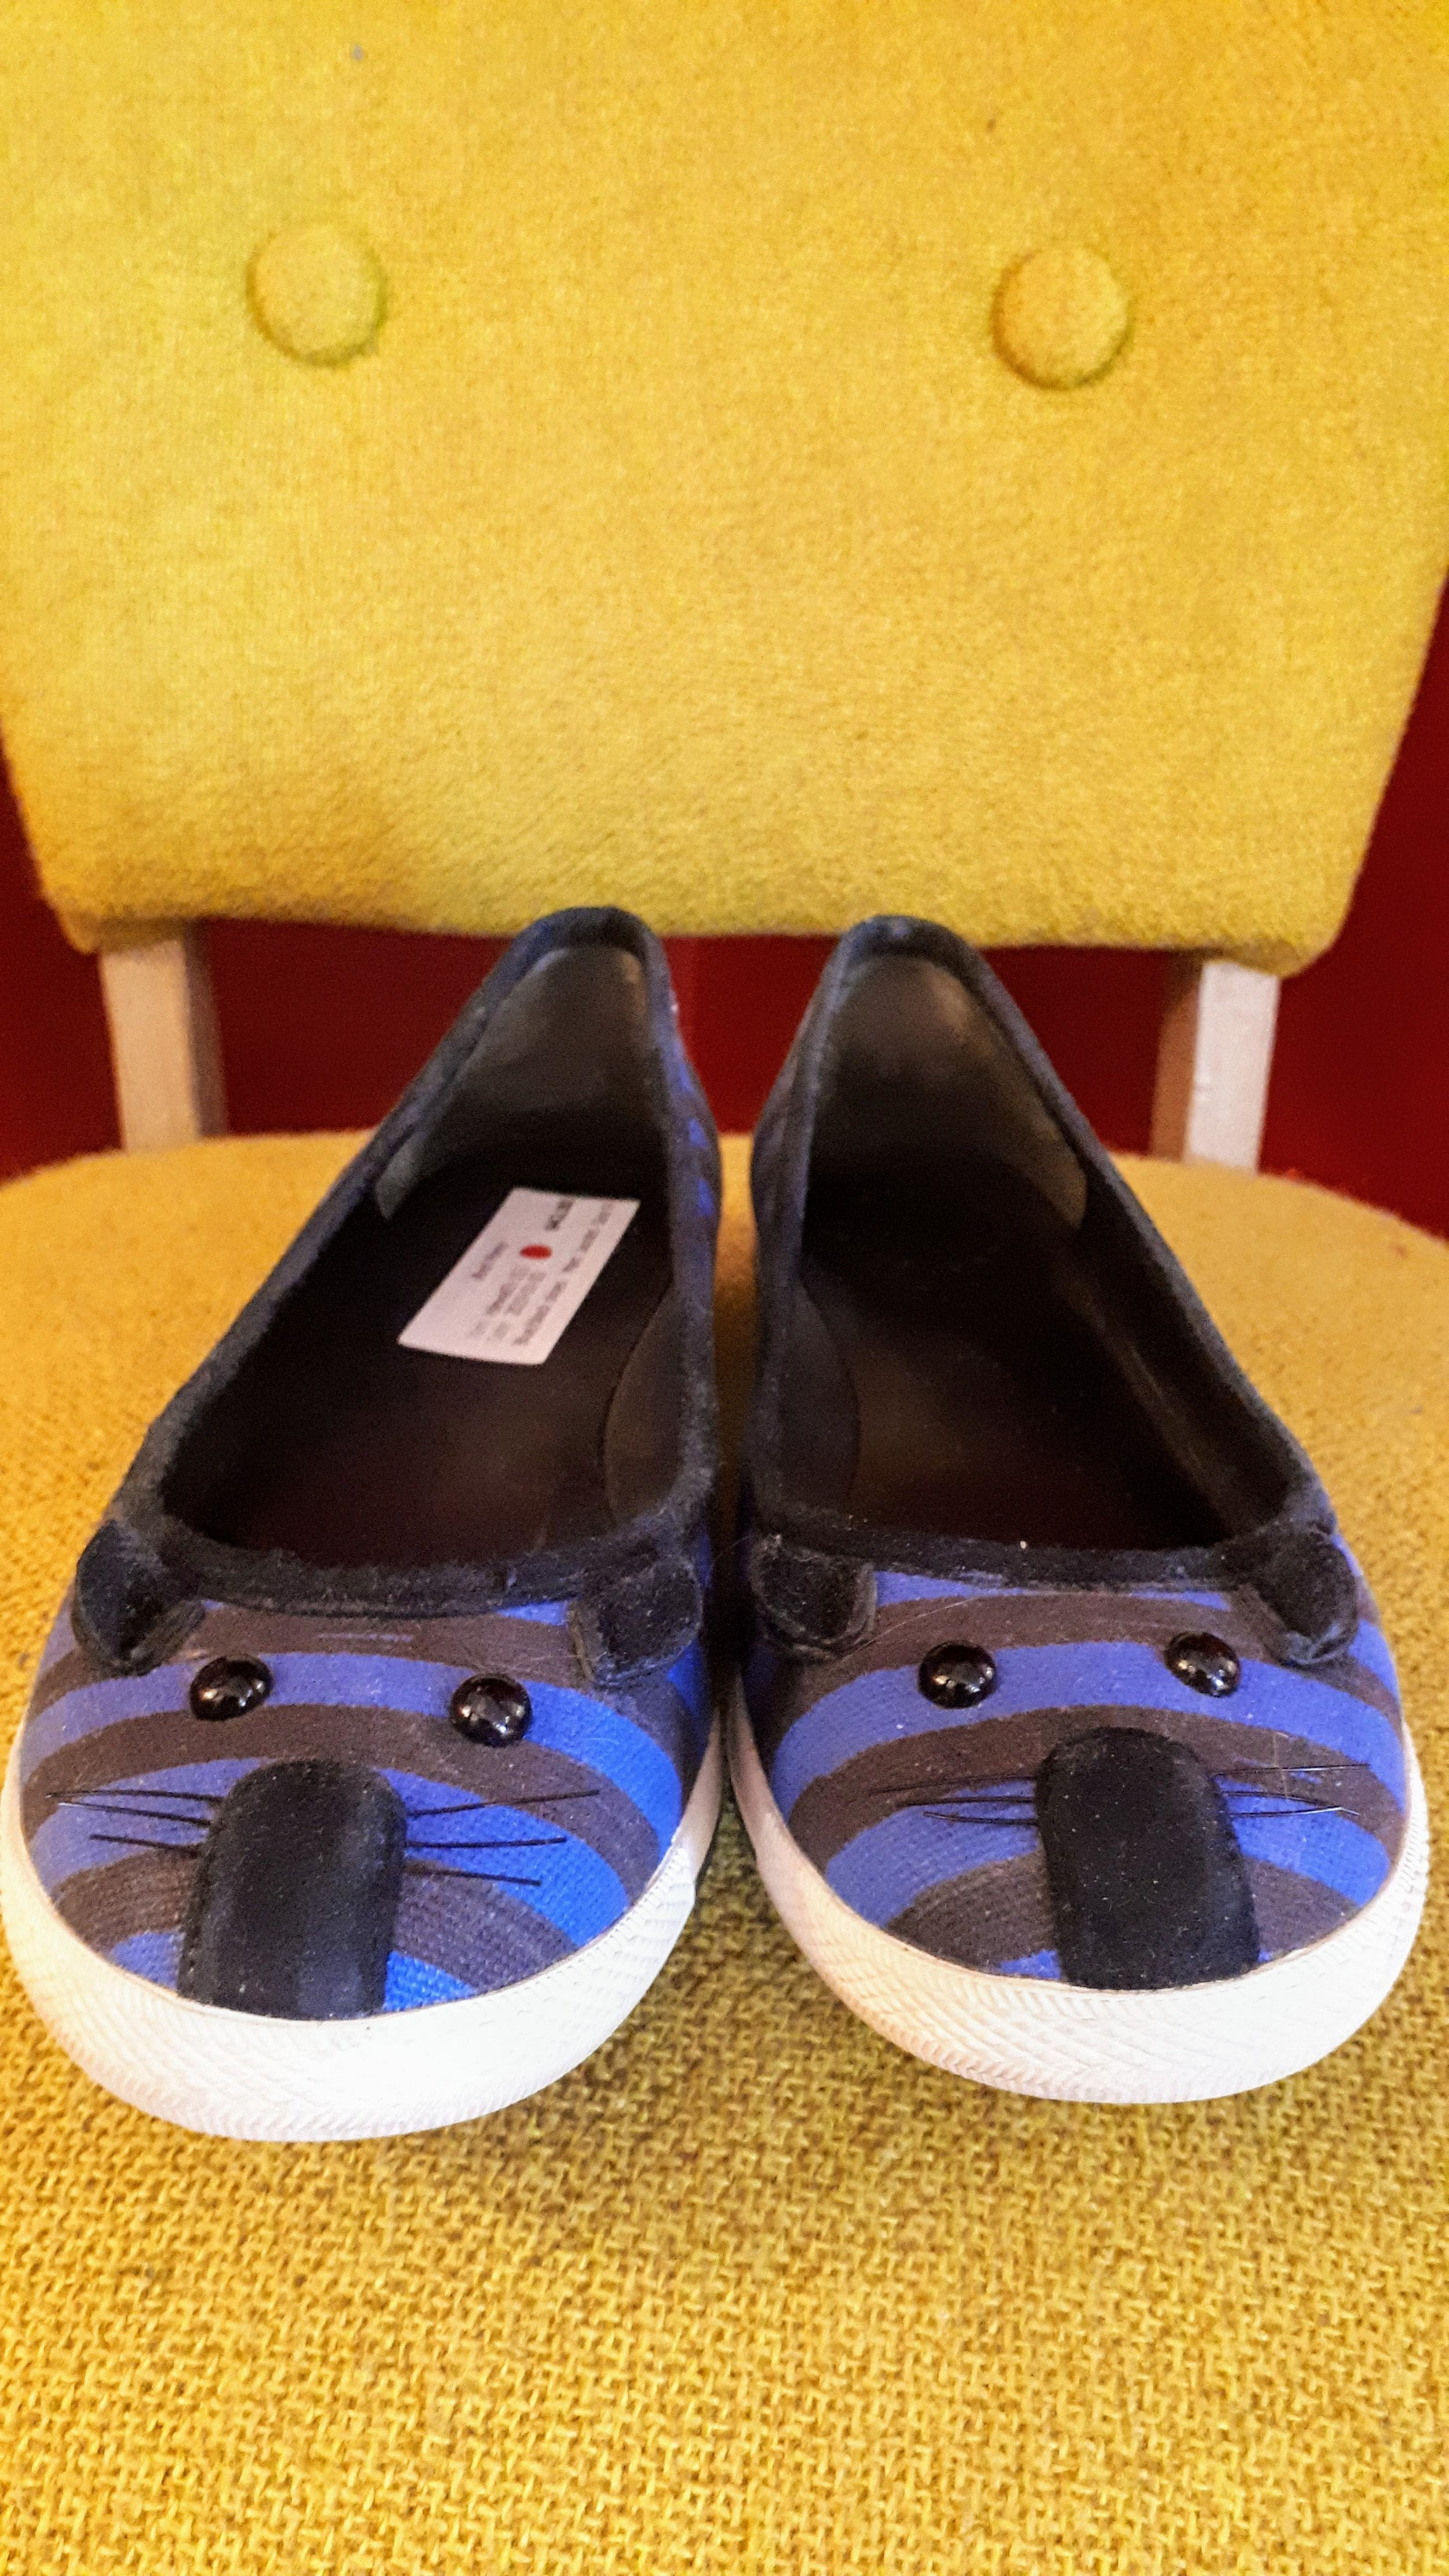 Marc Jacobs shoes; Size 7, $42 (now $21!)